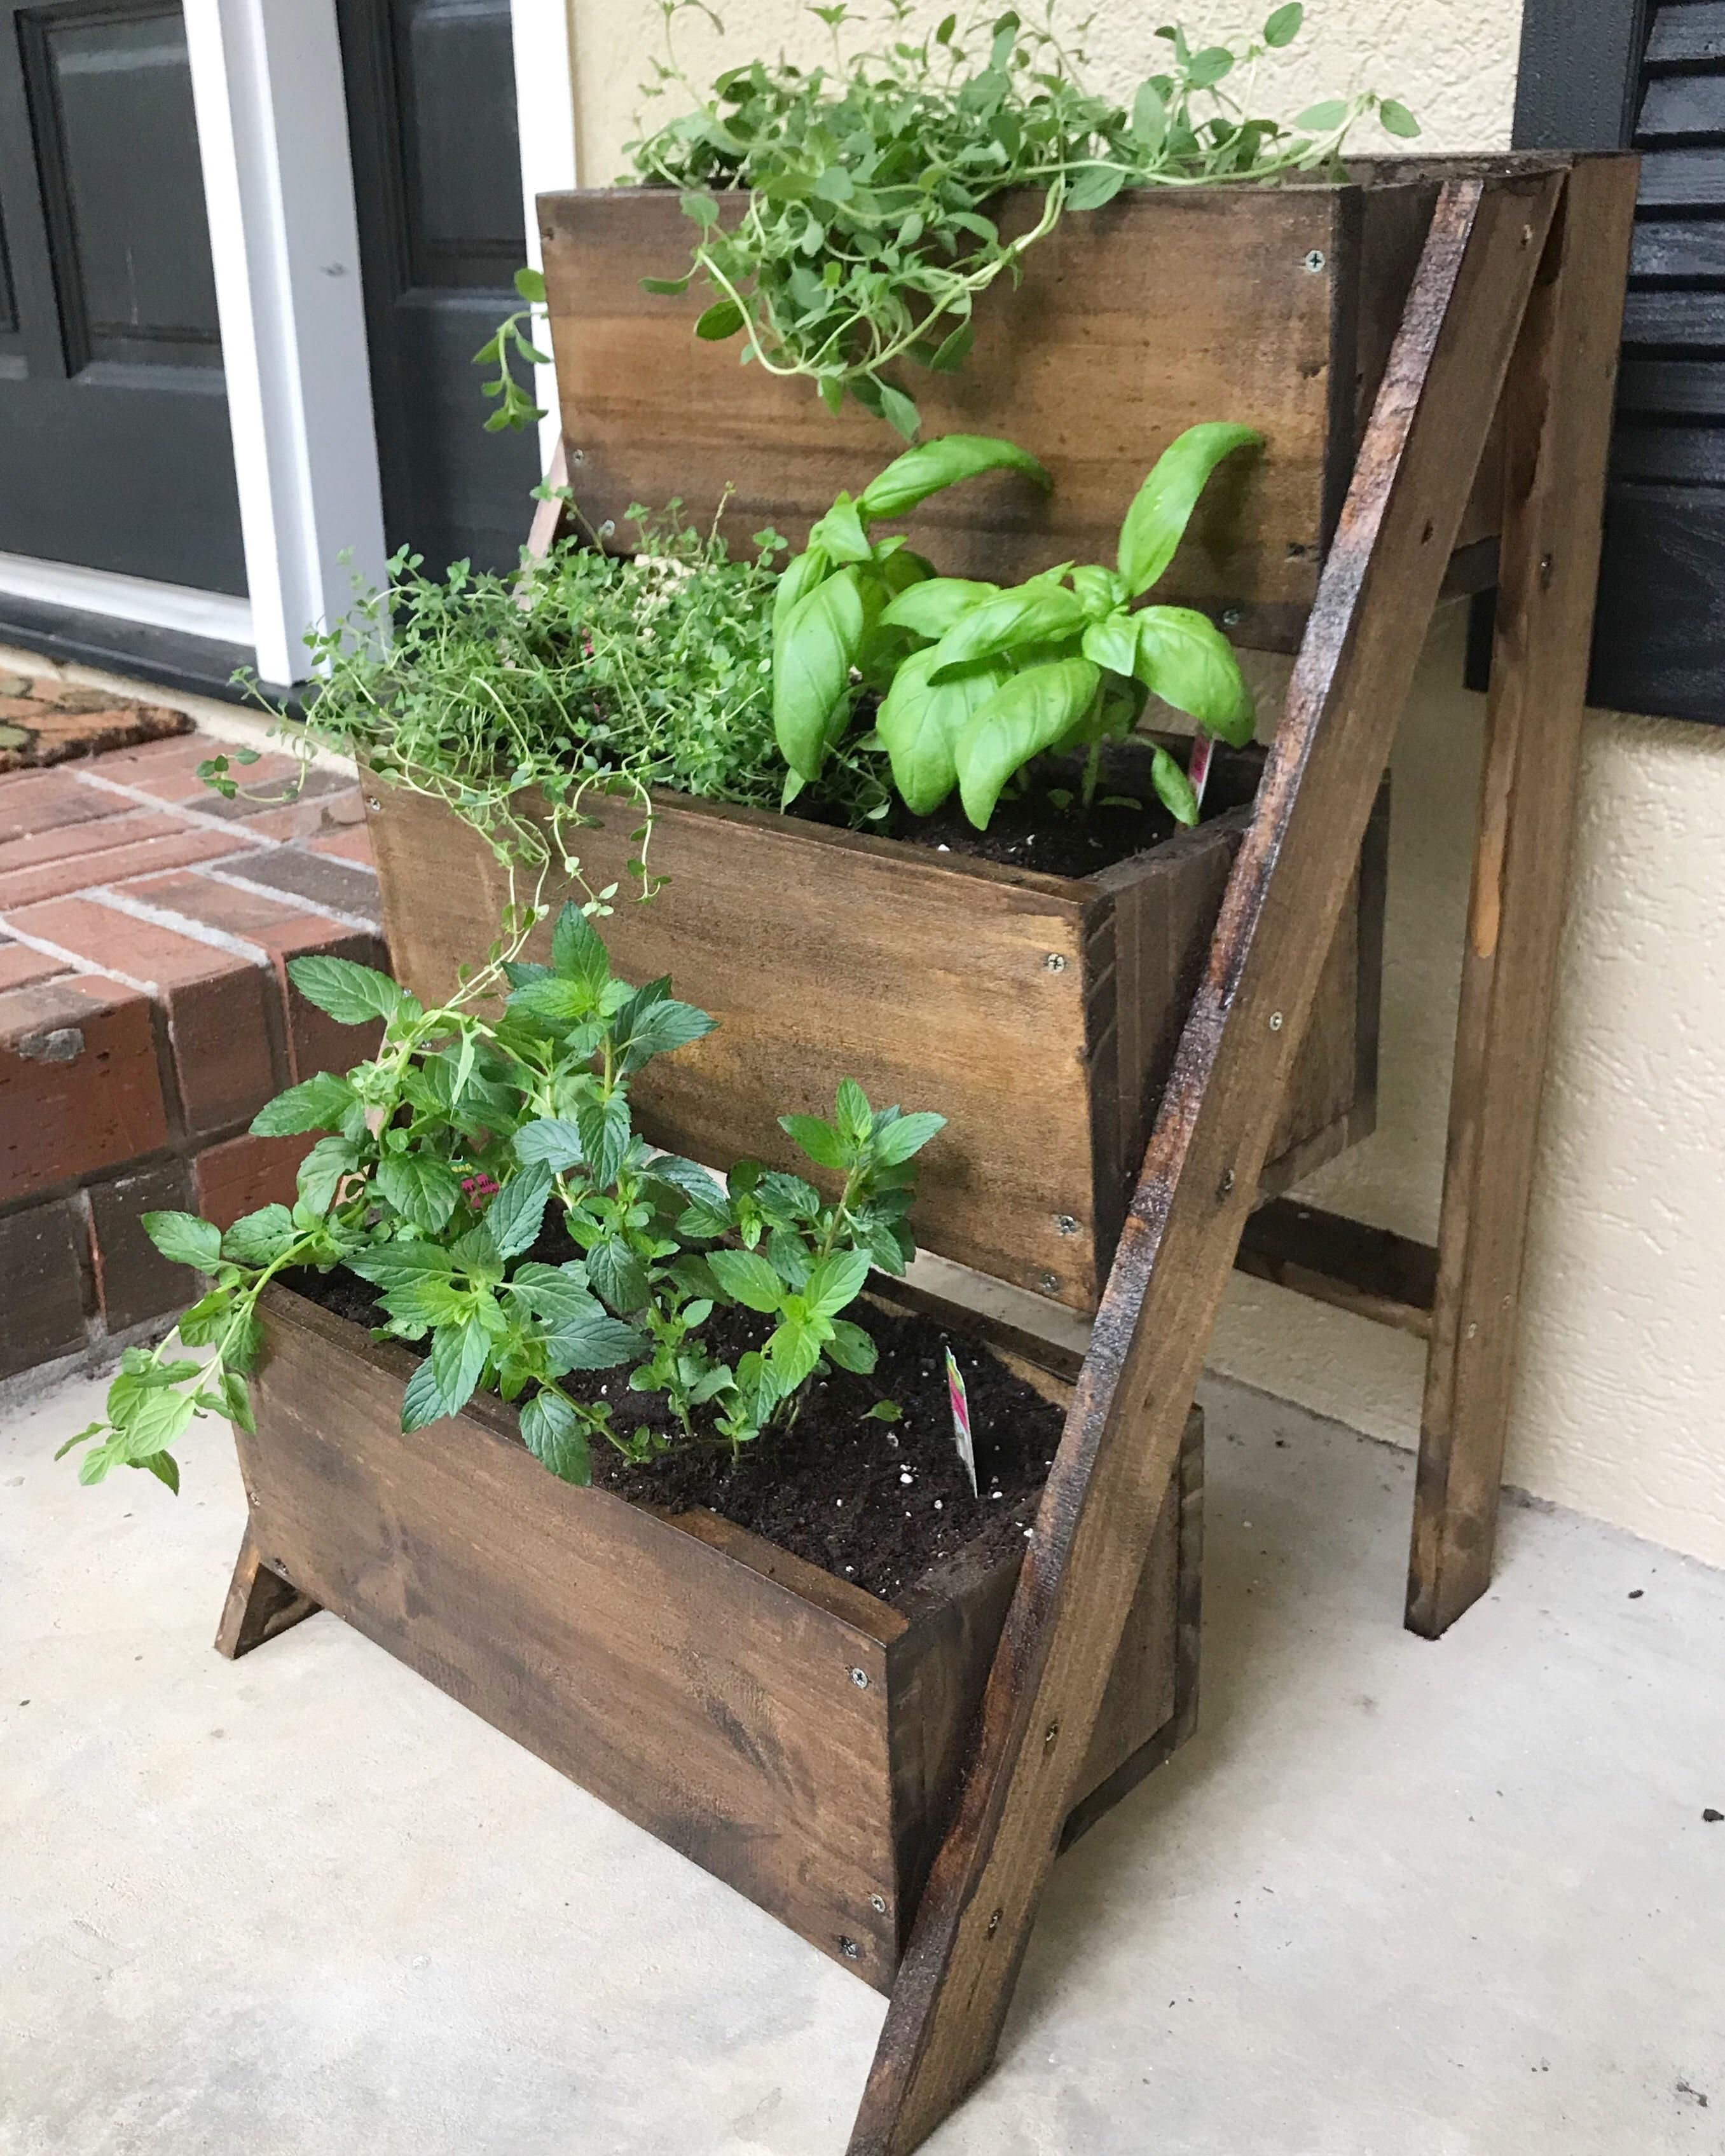 I_knit_thingsI built an herb garden today. This will be my first try at herbs and Im excited! https://i.redd.it/gzk2ehc2bhqz.jpg